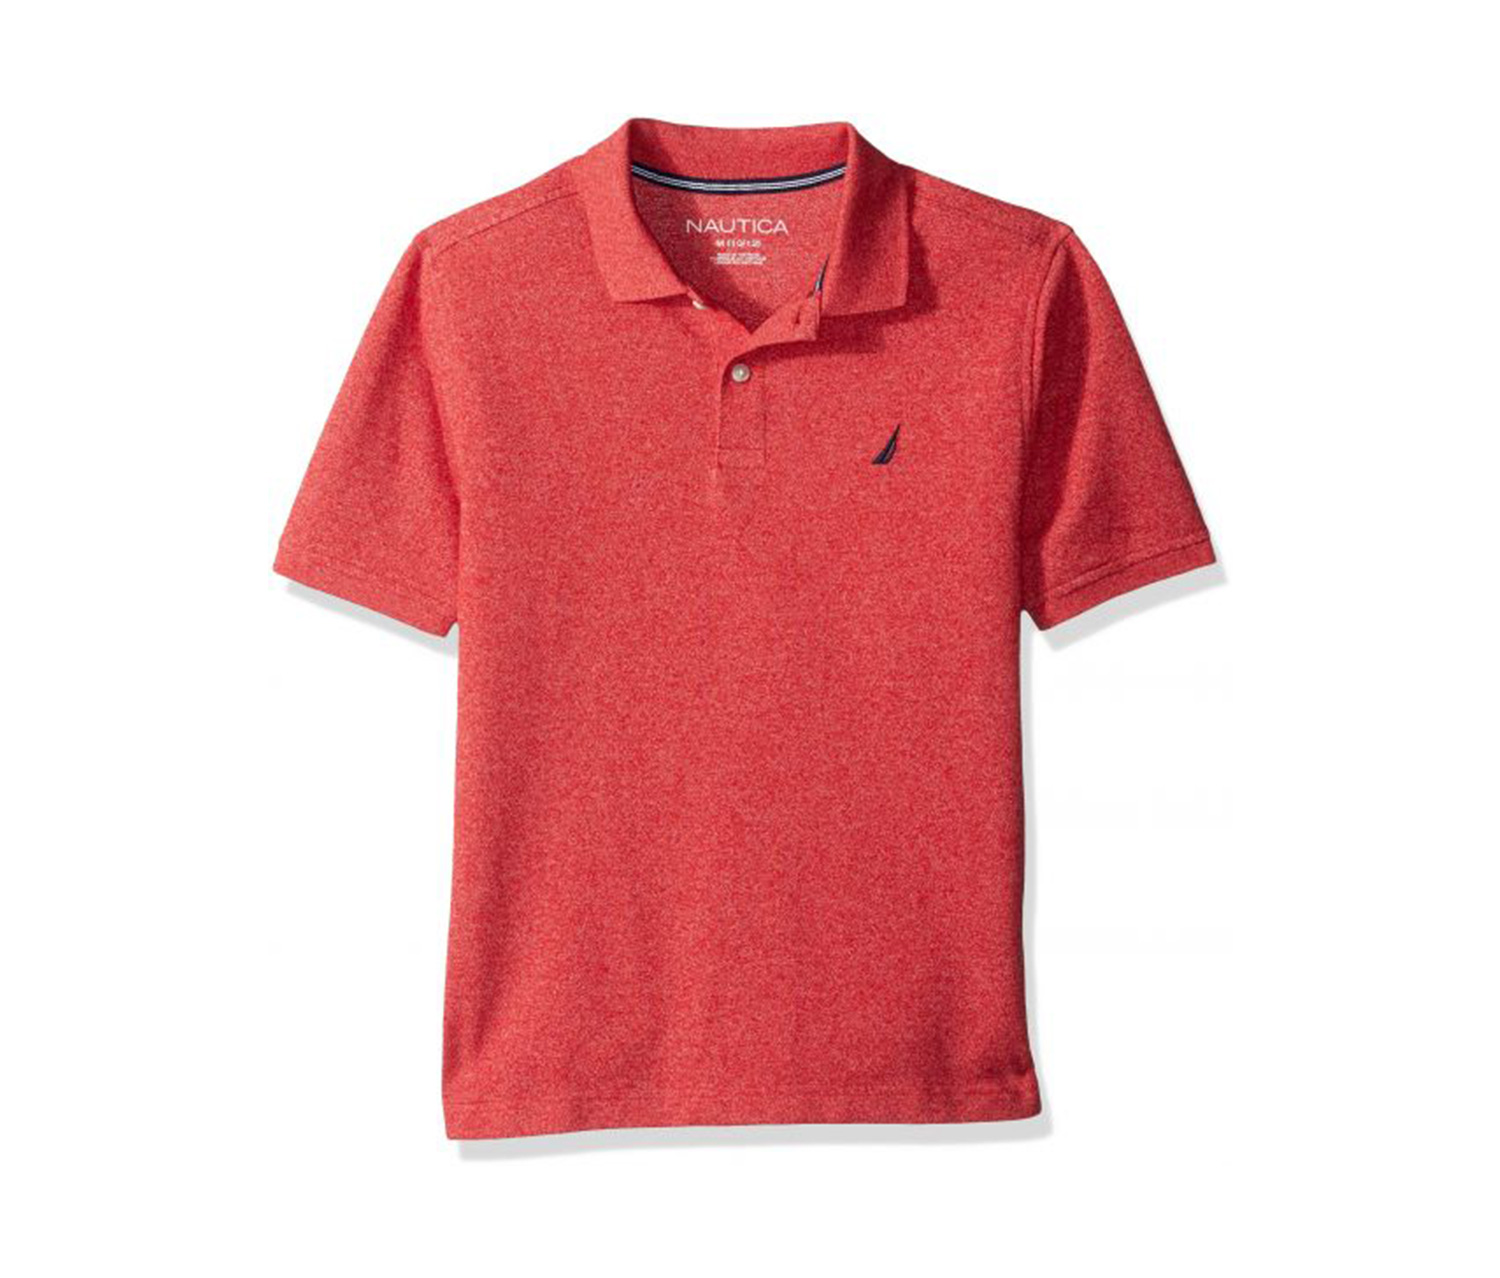 eab343462 Shop nautica Nautica Big Boys Short Sleeve Solid Deck Polo Shirt, Carmine  for Kids - Boys in Lebanon - Brands For Less